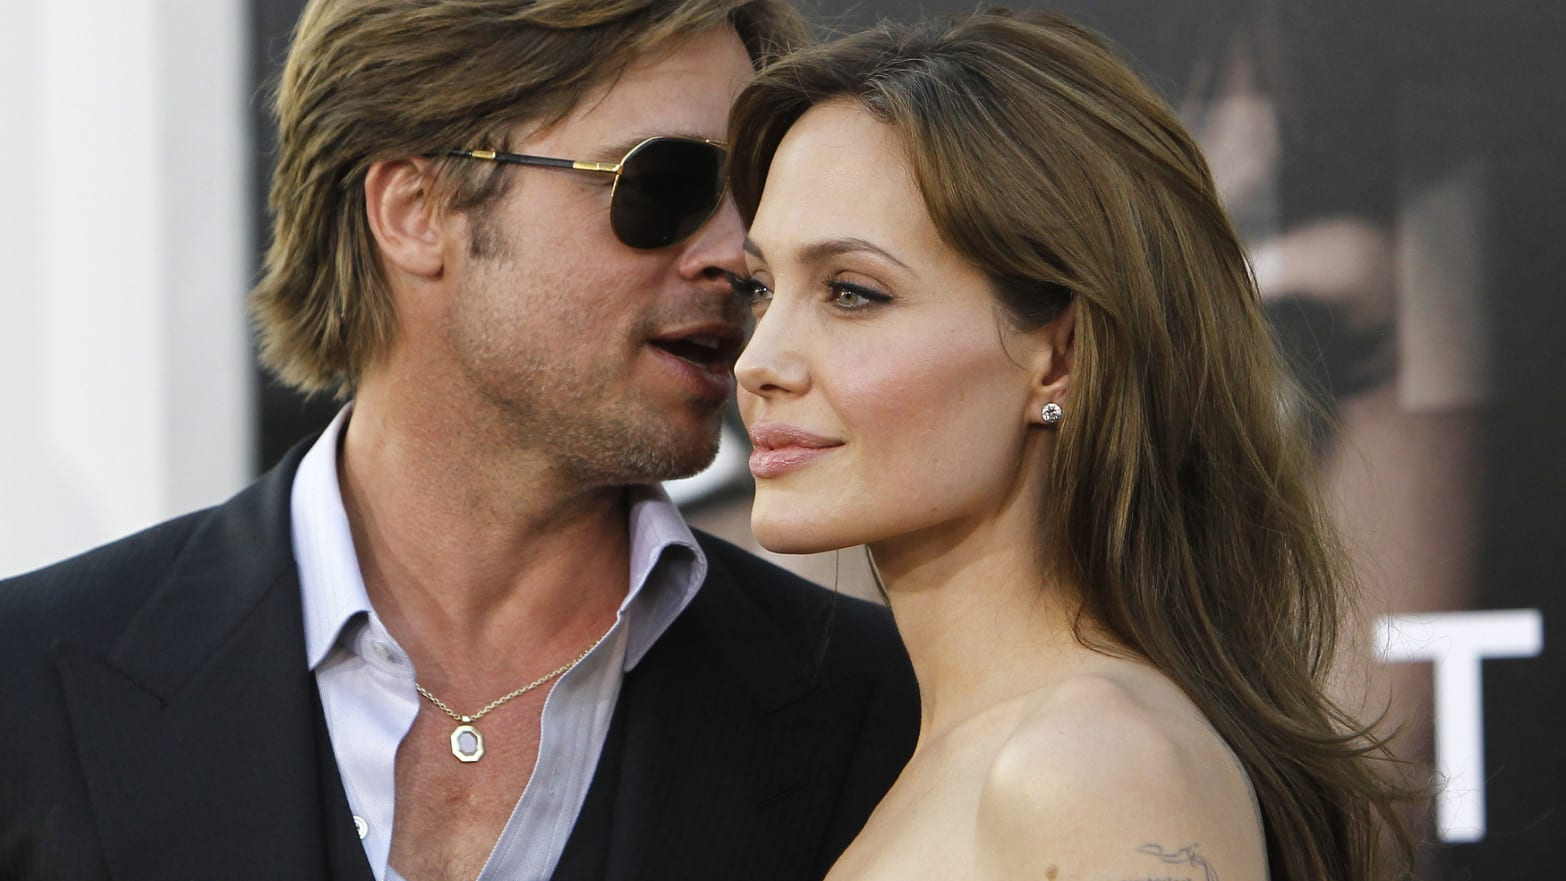 Angelina Jolie S Magical Tattoos Failed To Save Her Marriage With